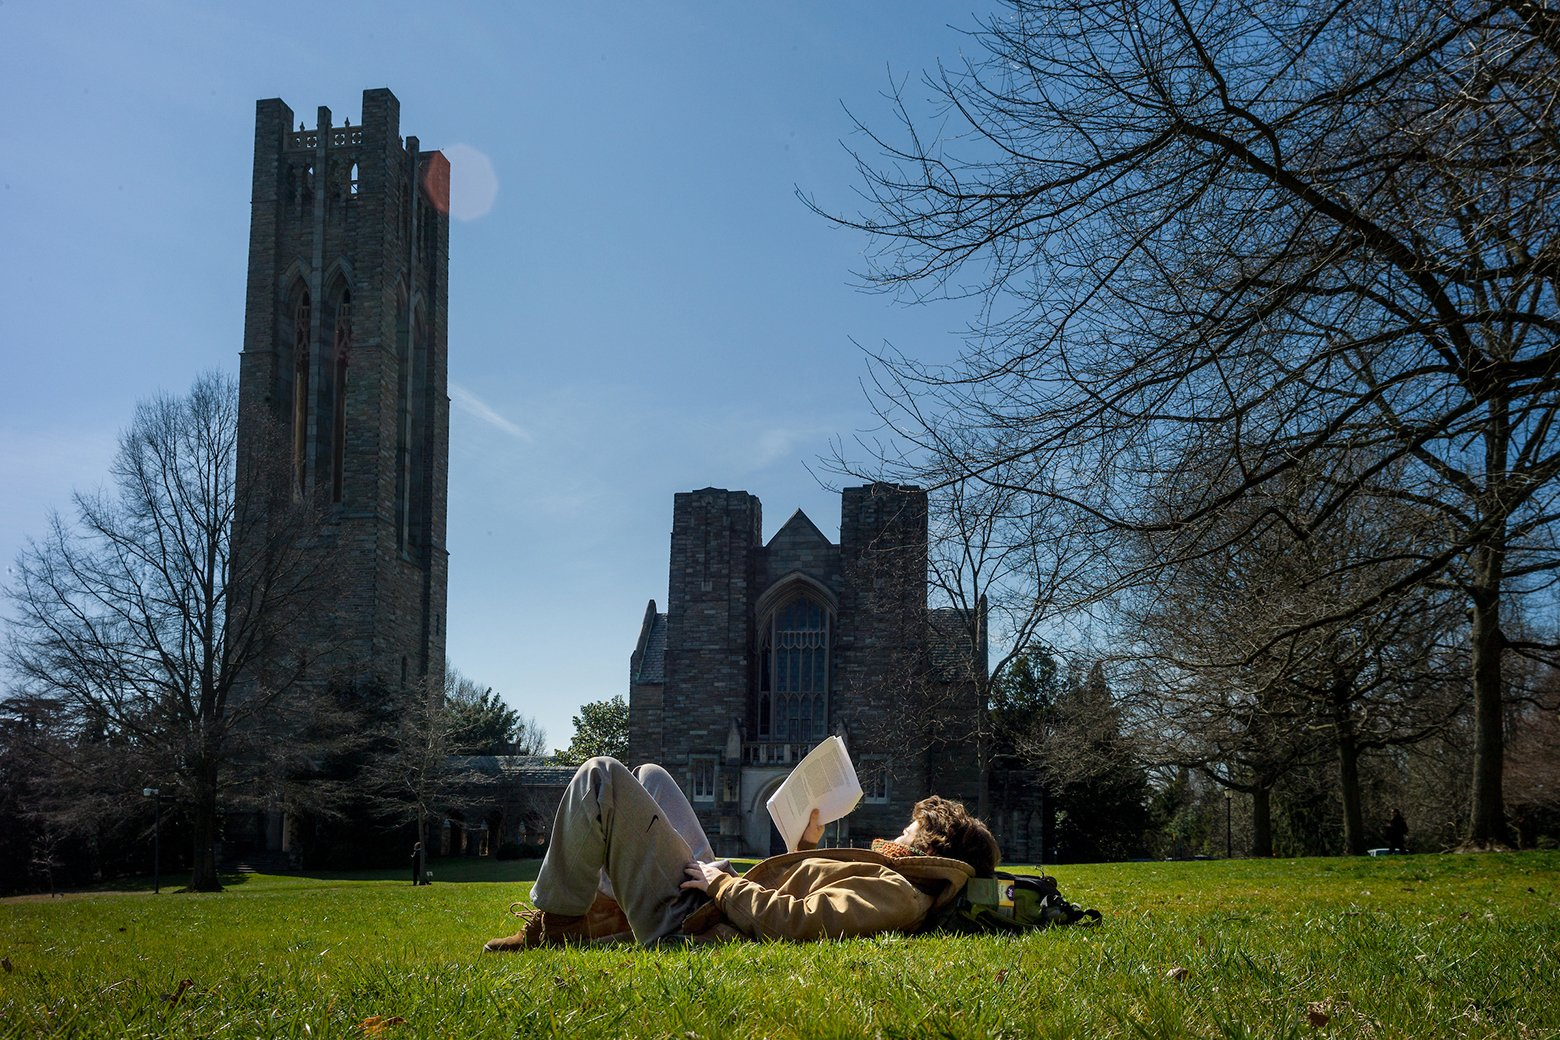 Student lies on ground and reads book outdoors